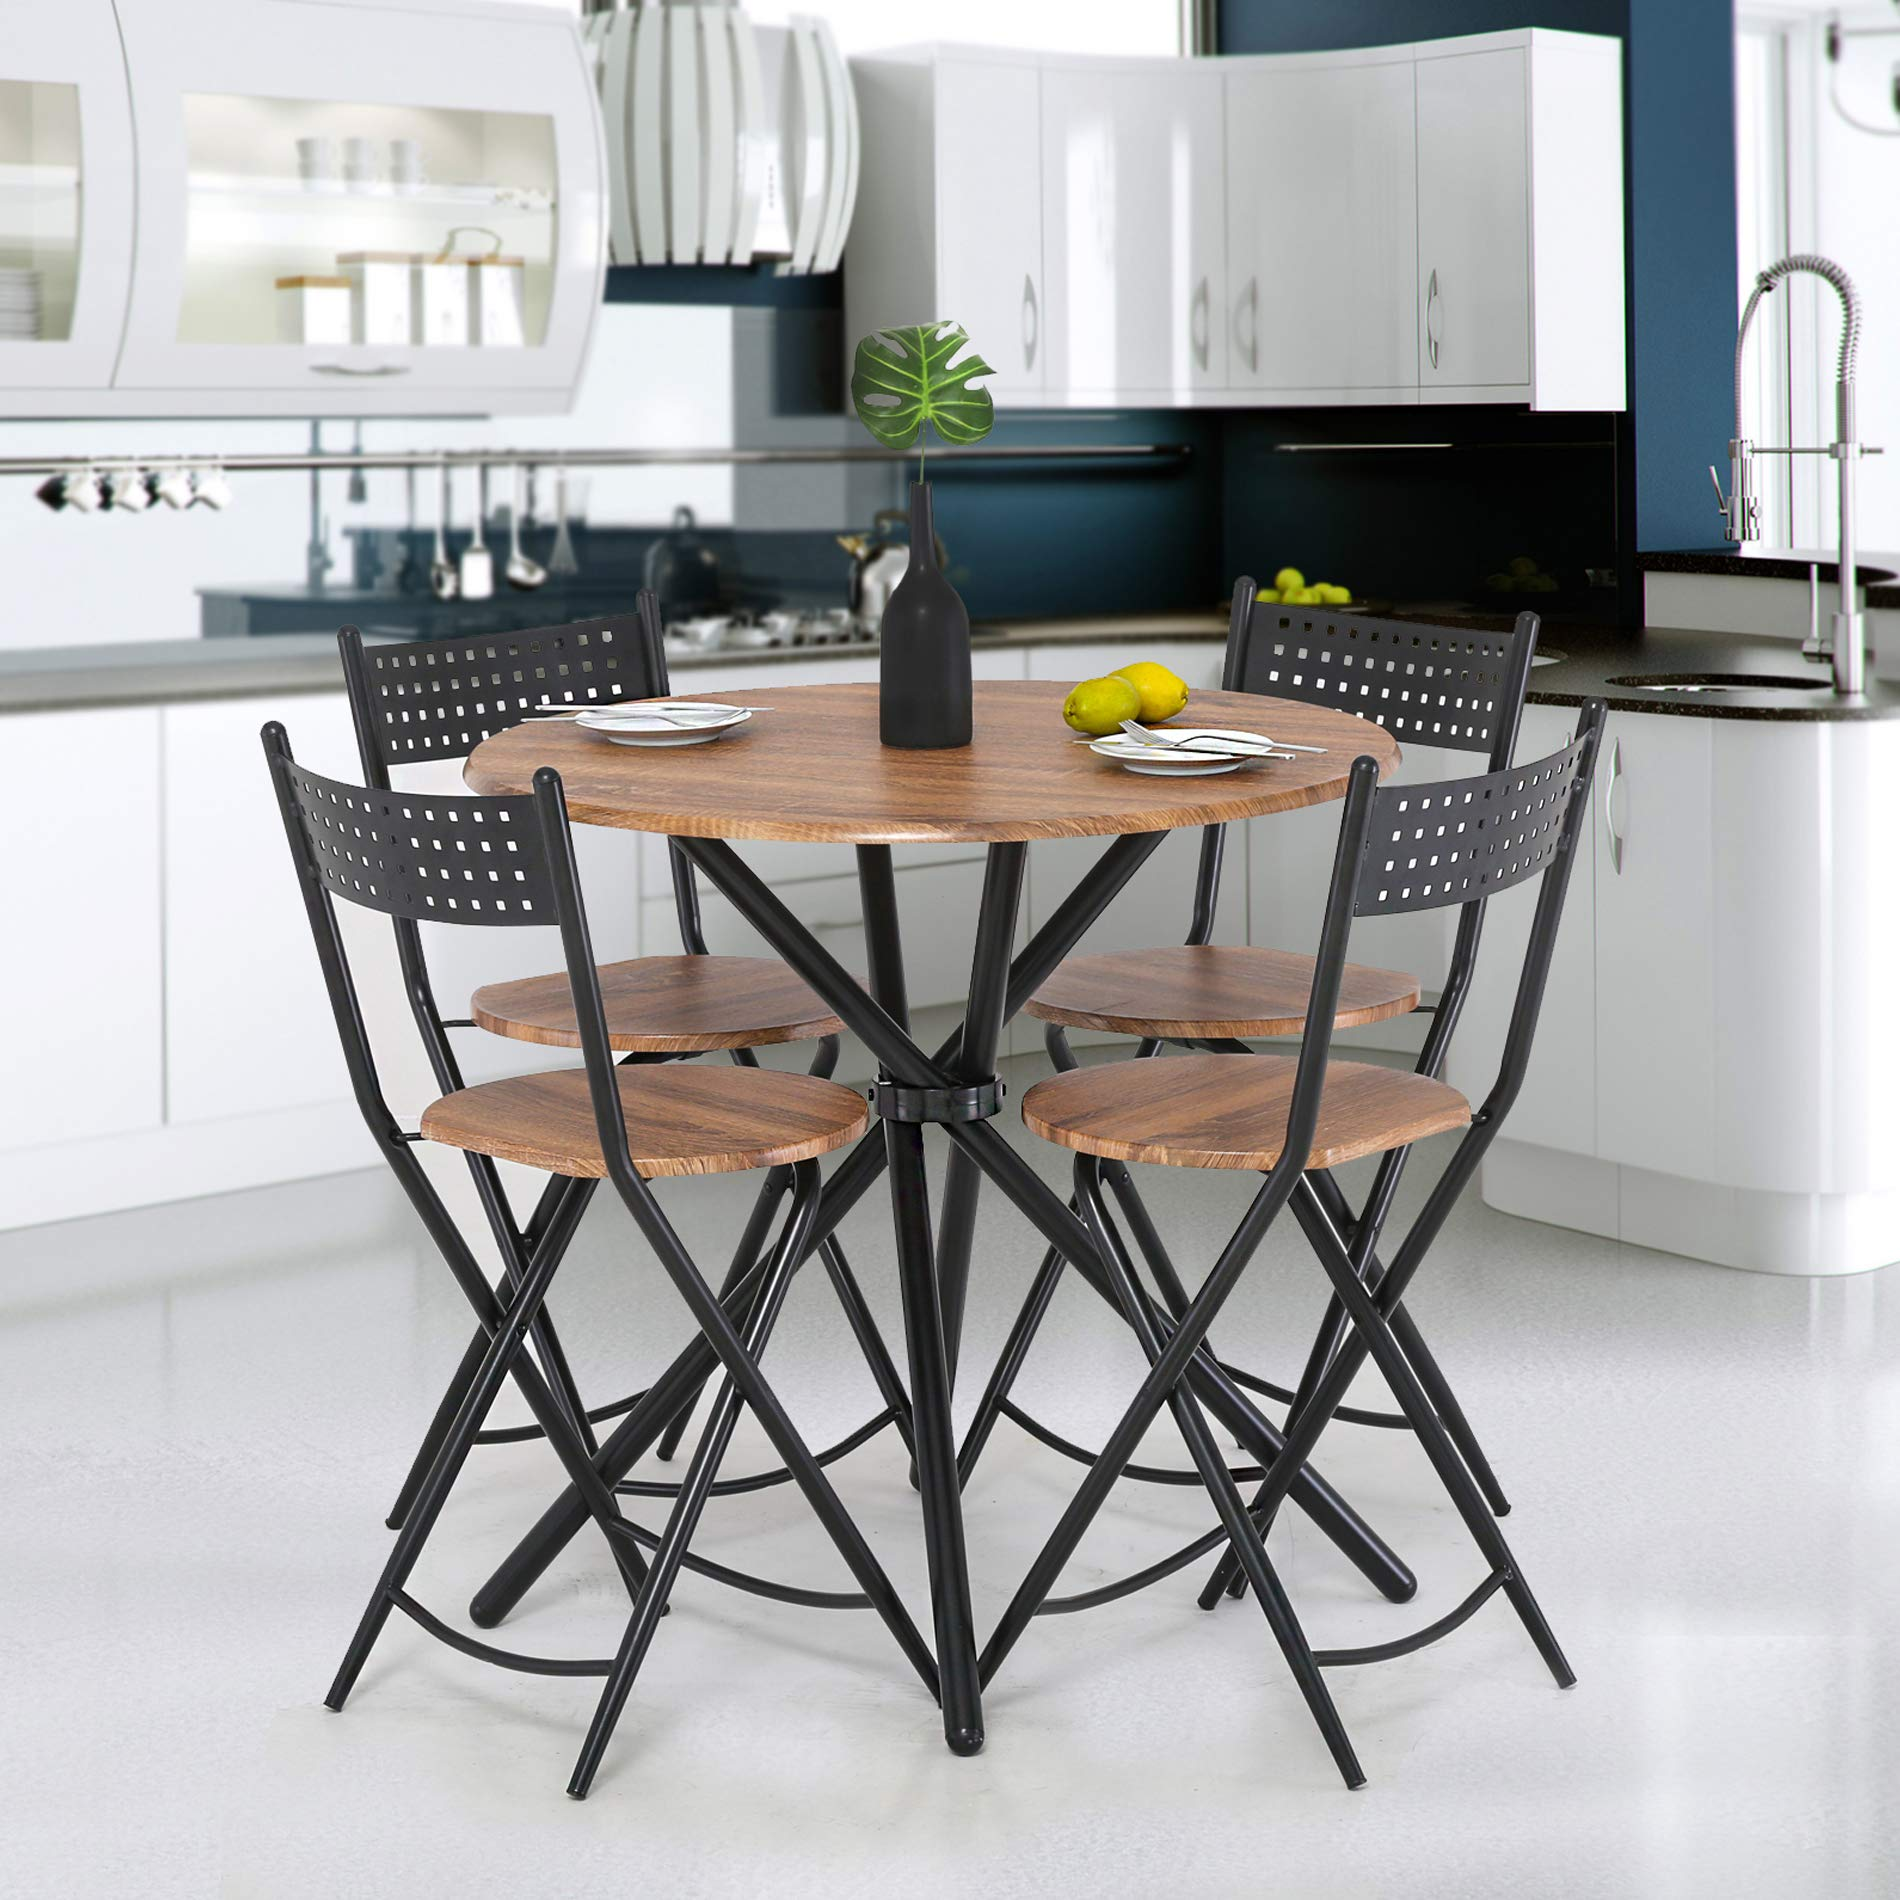 Homury 5pcs Dining Table Set Kitchen Table Kitchen Furniture Round Dining Table with 4 Round Dining Chair Dining Set Wood Coffee Table Set Home Office Table Set by Homury (Image #3)